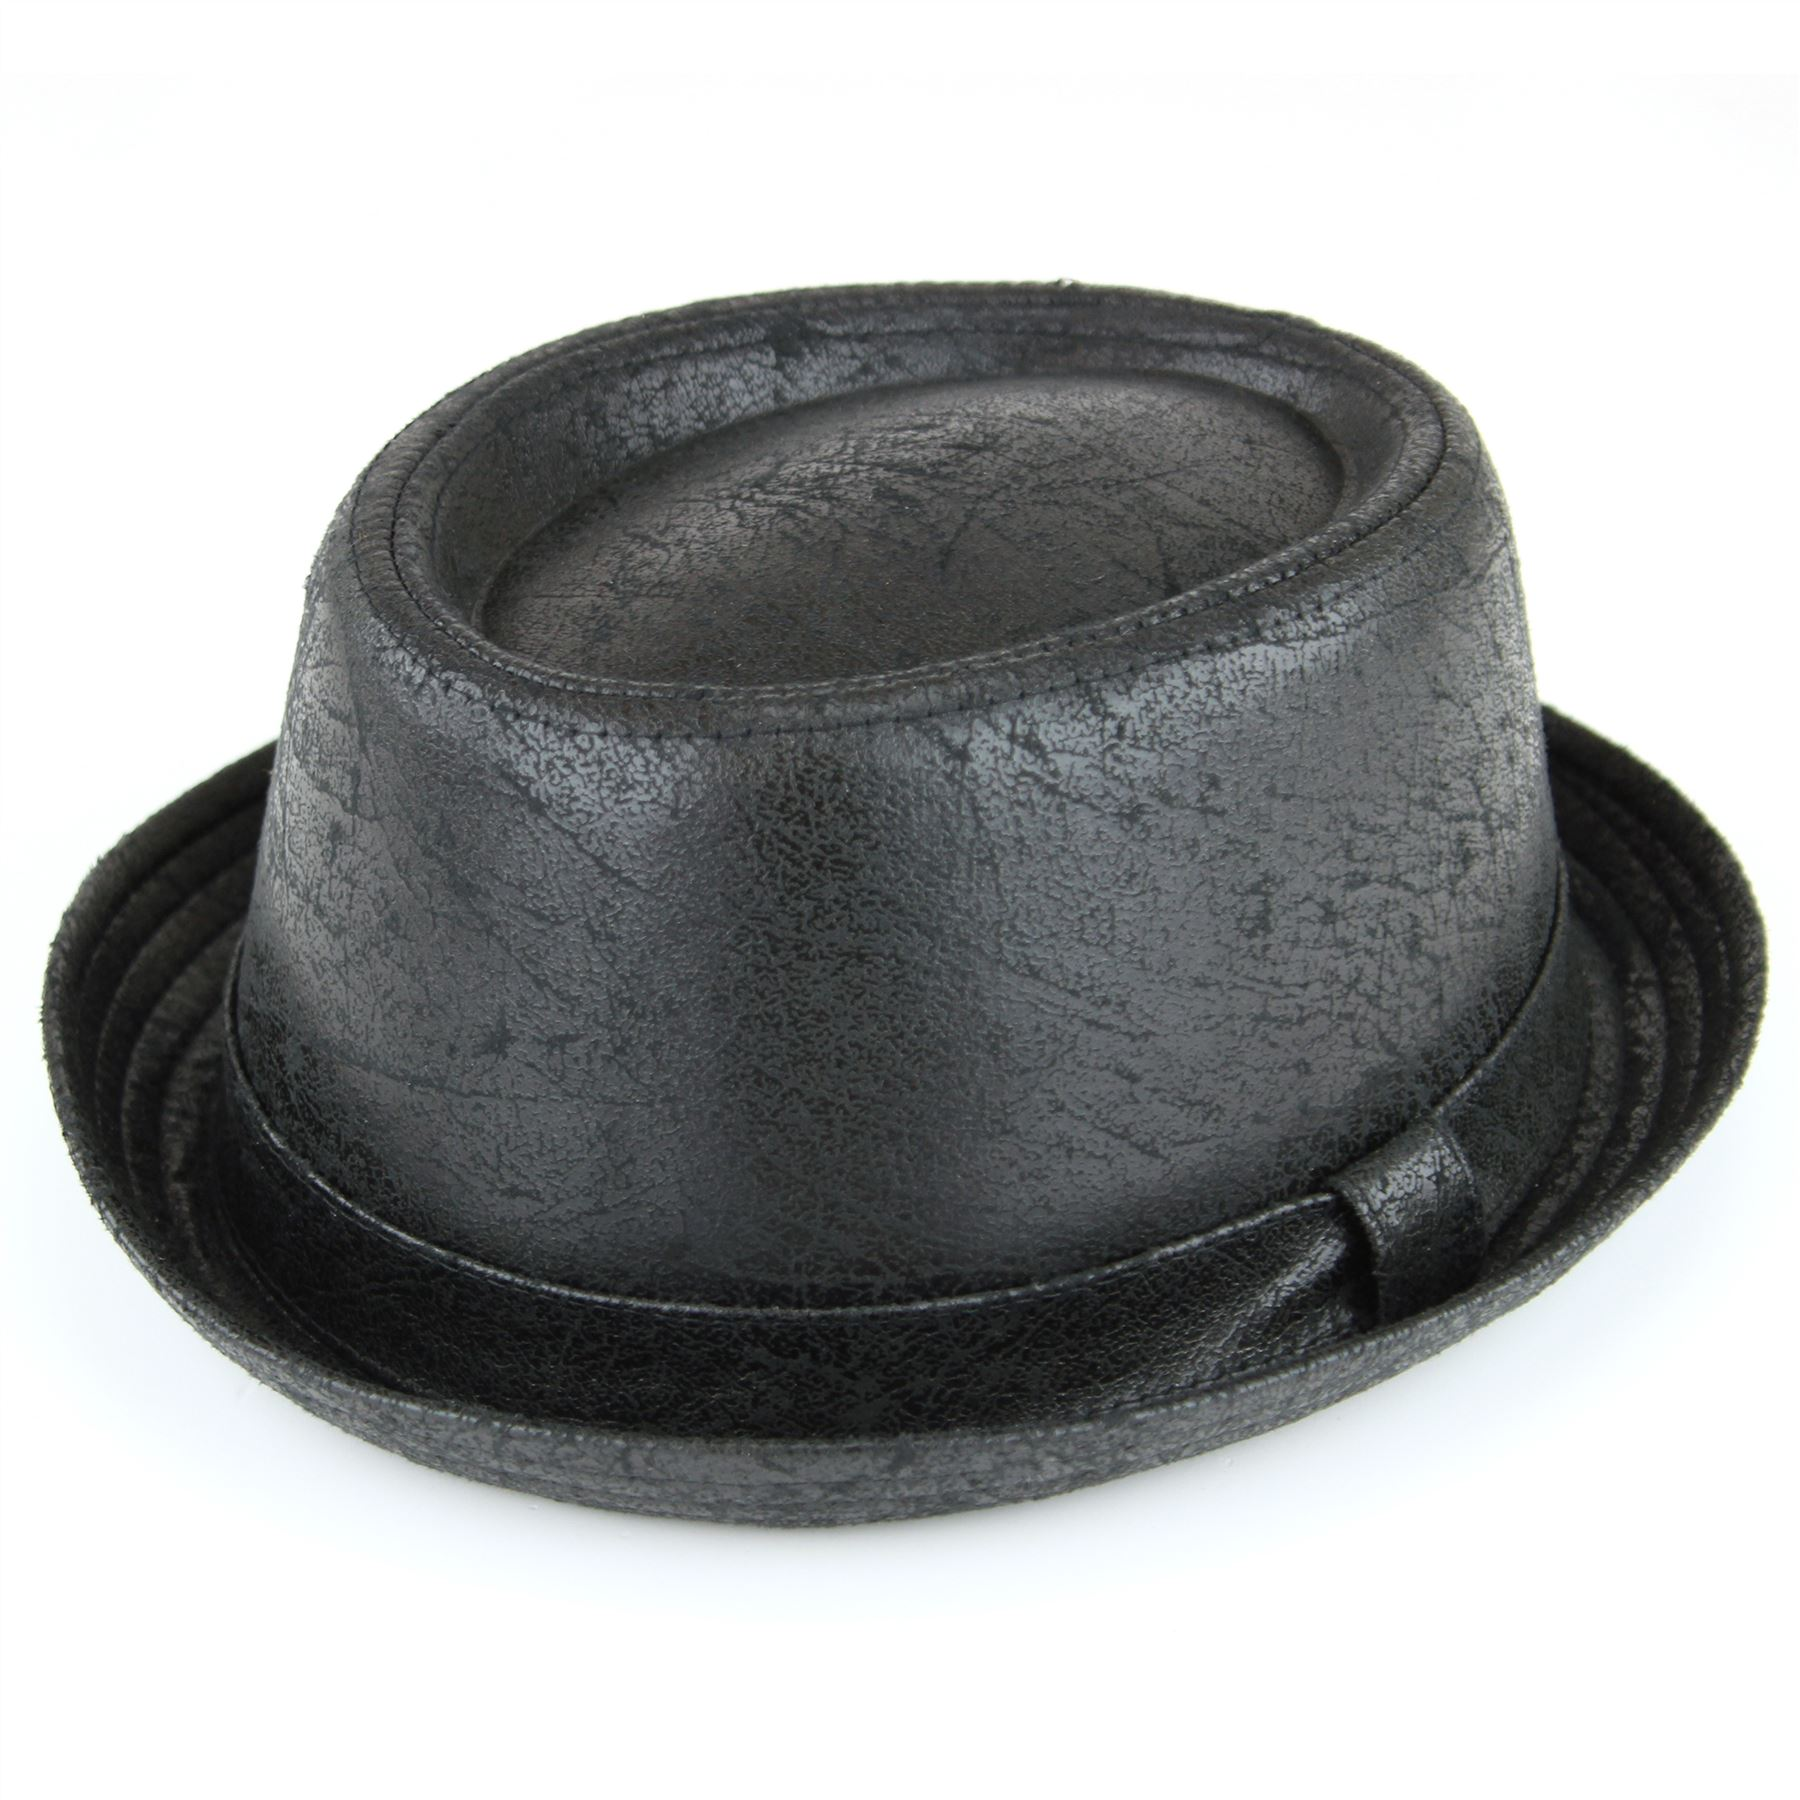 b60db6378855e Black cracked leather effect pork pie trilby hat from the Hawkins  Collection.